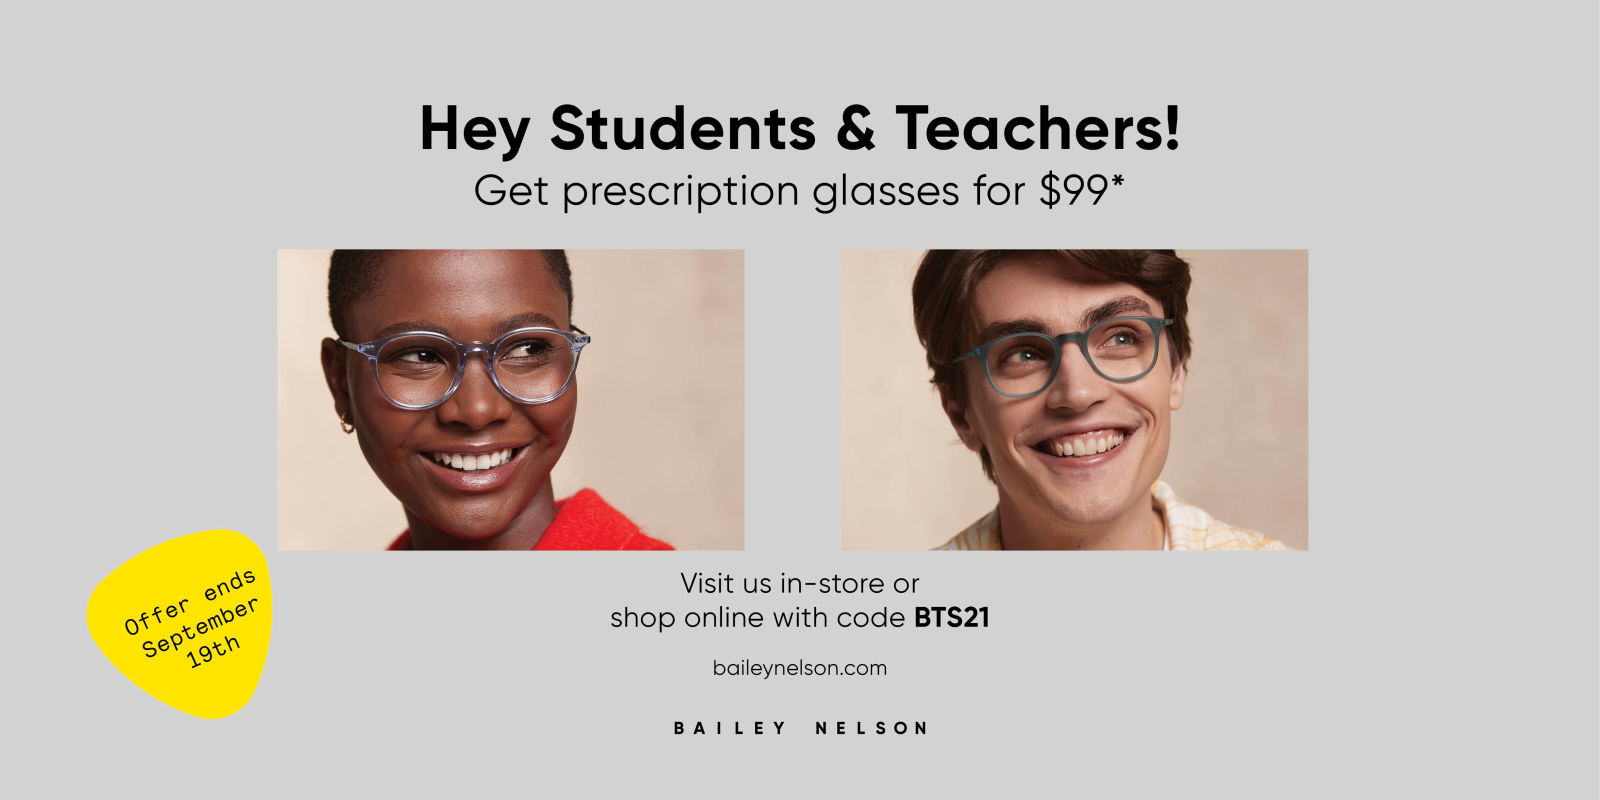 [Image] [offer] Hey Students & Teachers! Get glasses for $99*